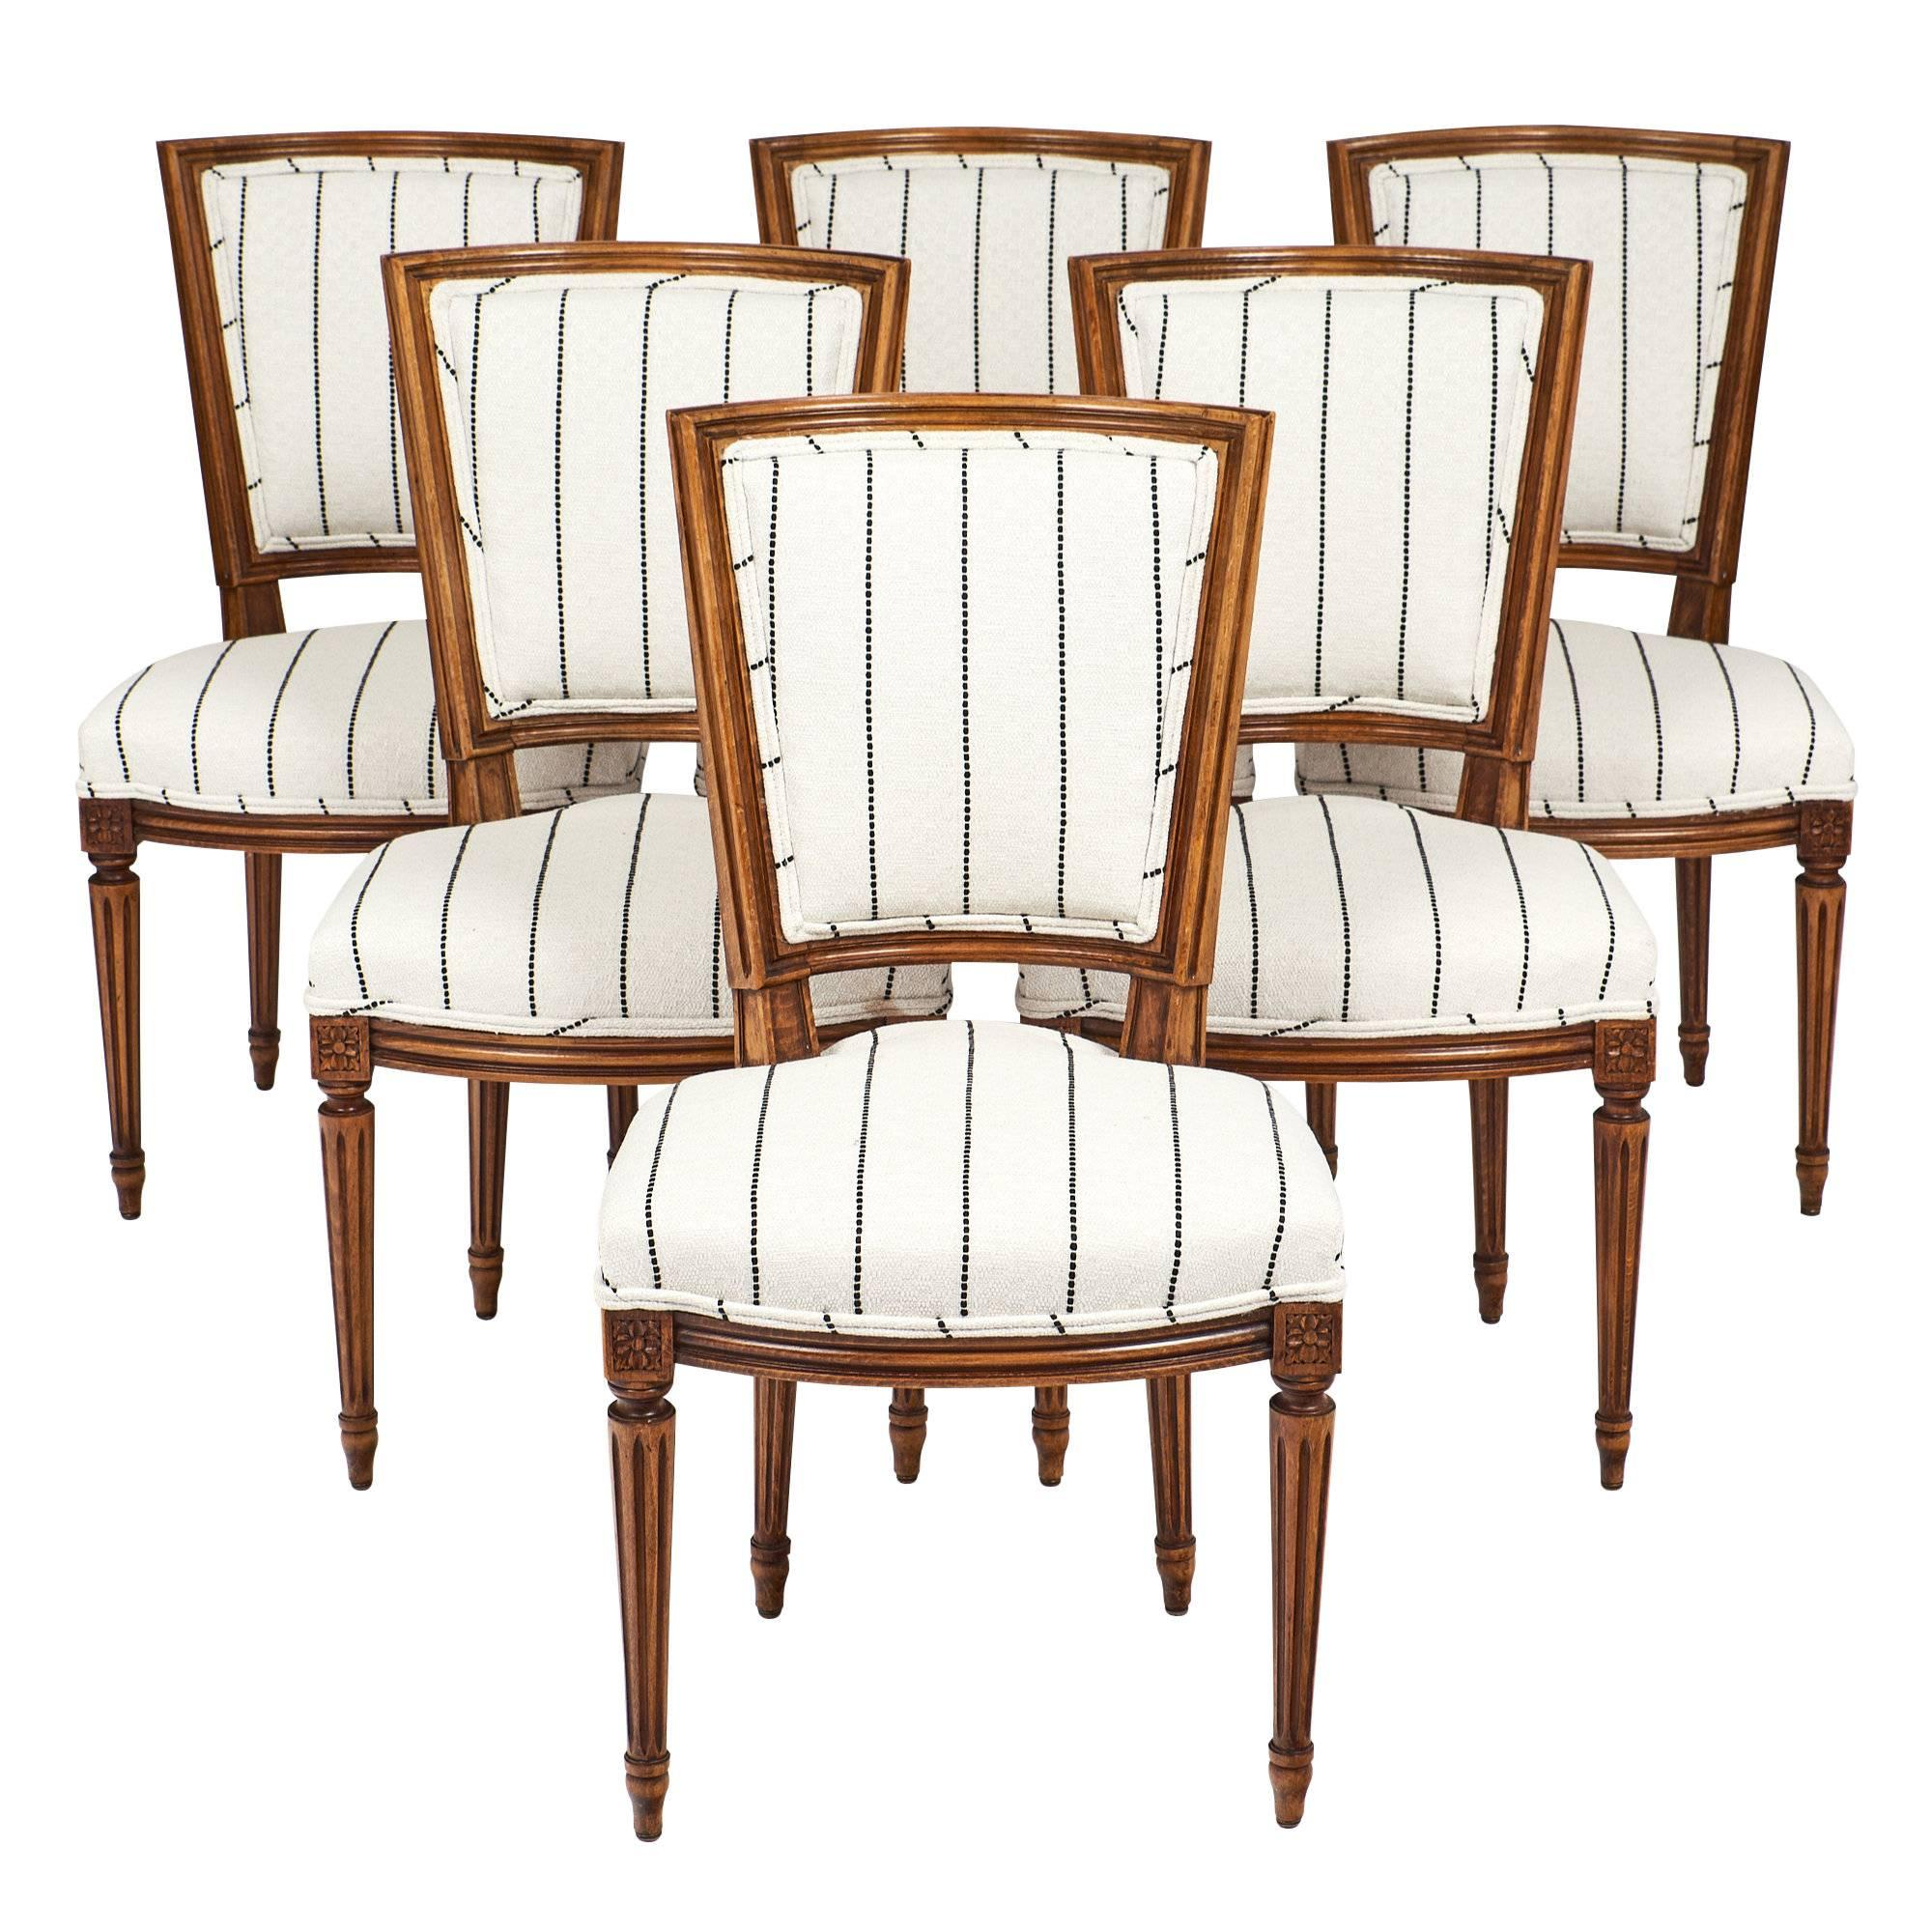 Six Striped Louis XVI Style Dining Chairs